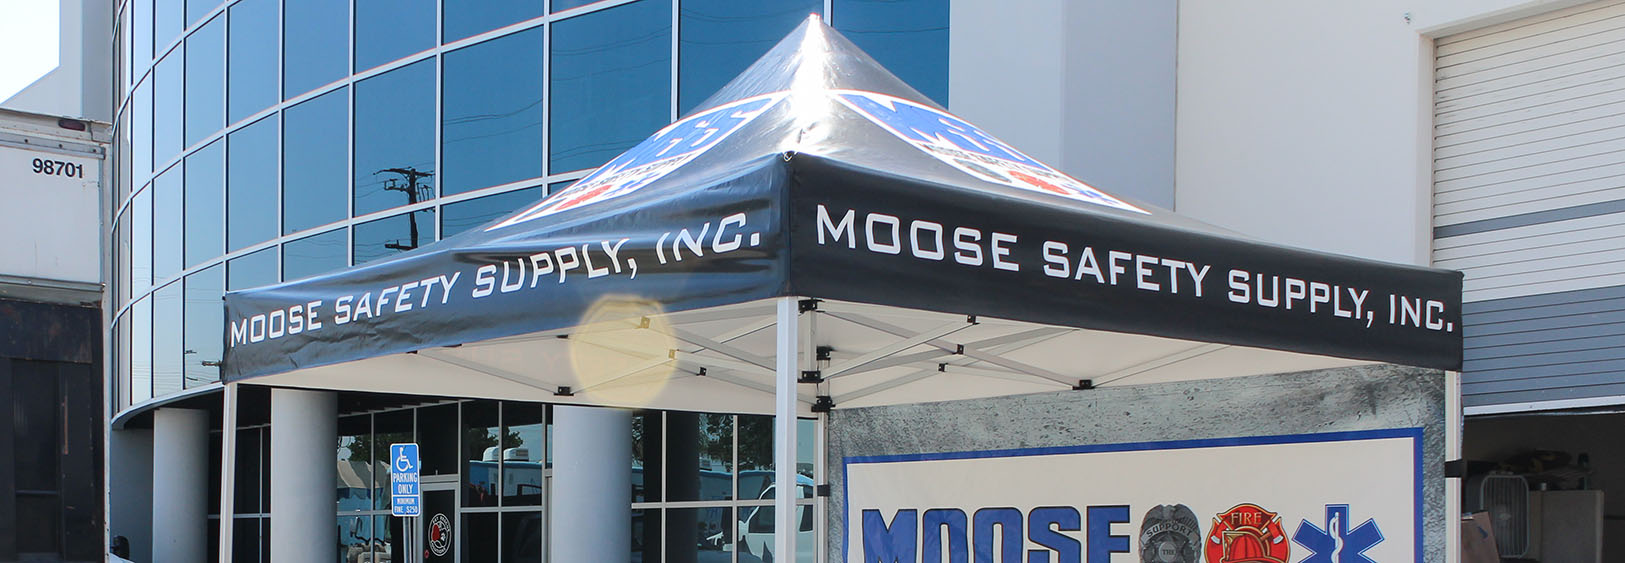 moose-safety-supply-header.jpg